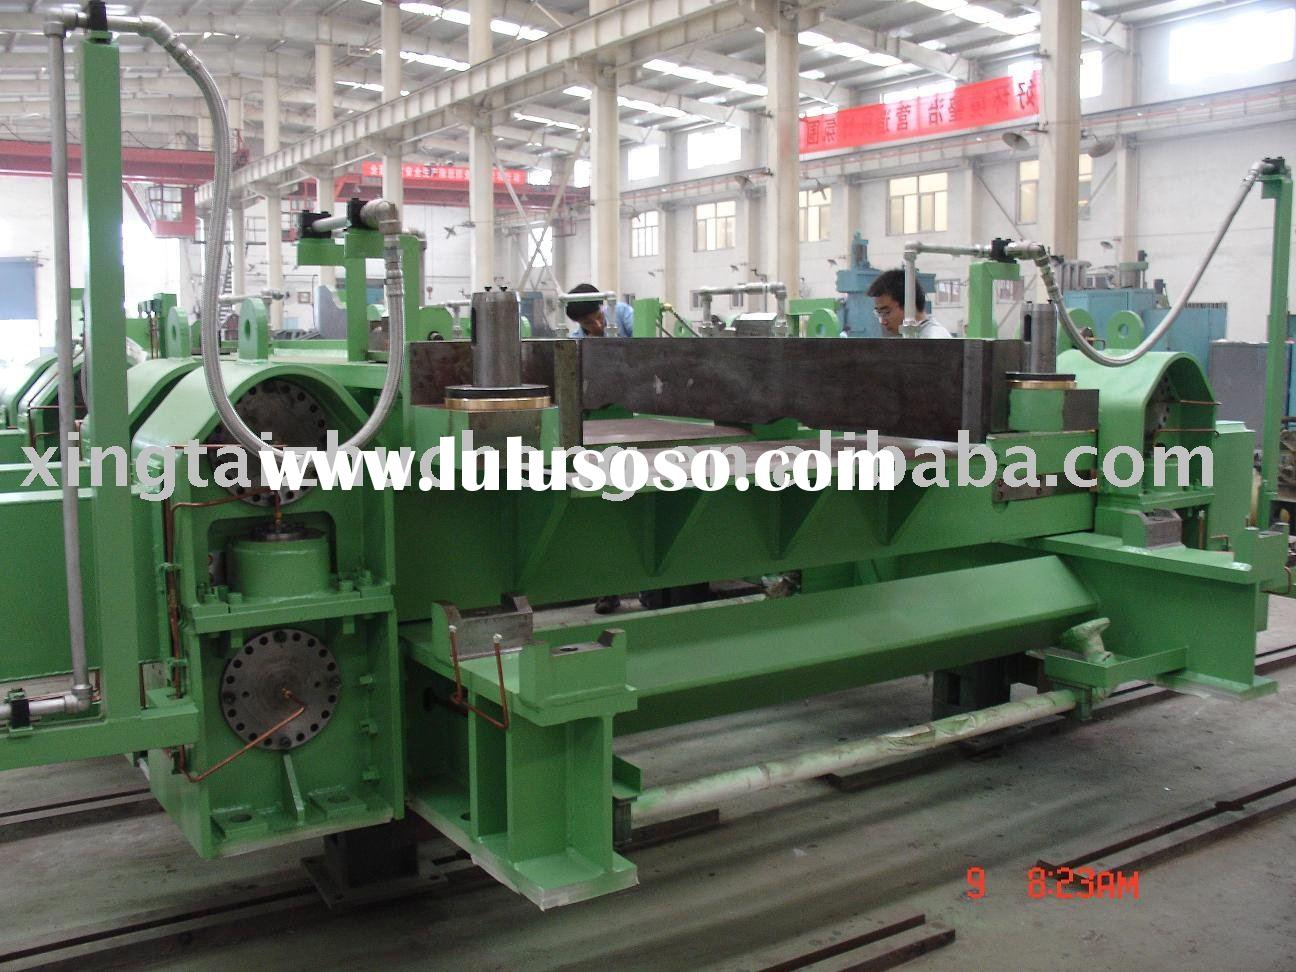 Straightening machines of Cold rolling mill production line